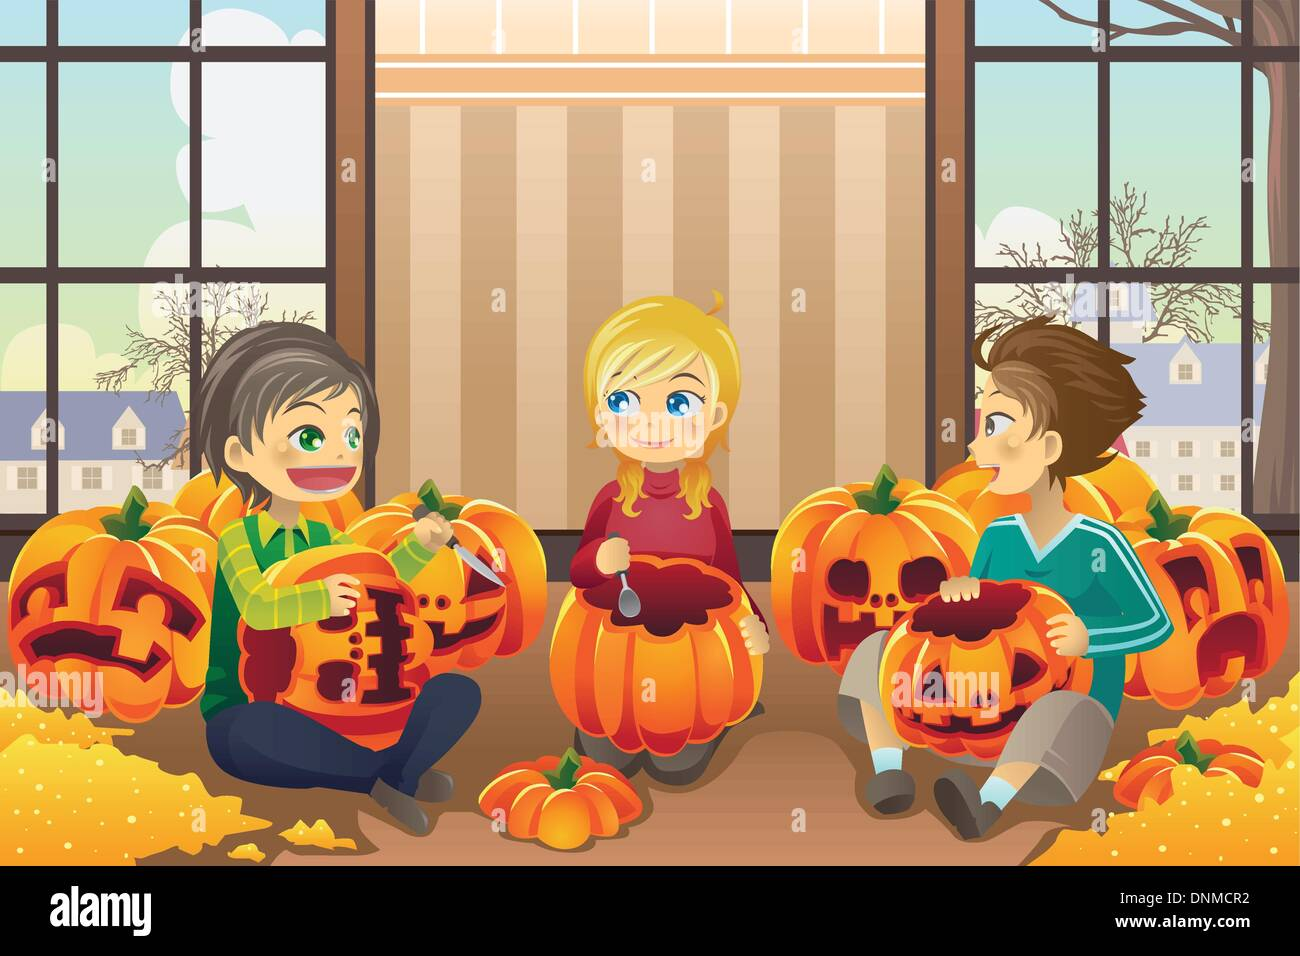 A vector illustration of kids carving pumpkins together at home - Stock Vector